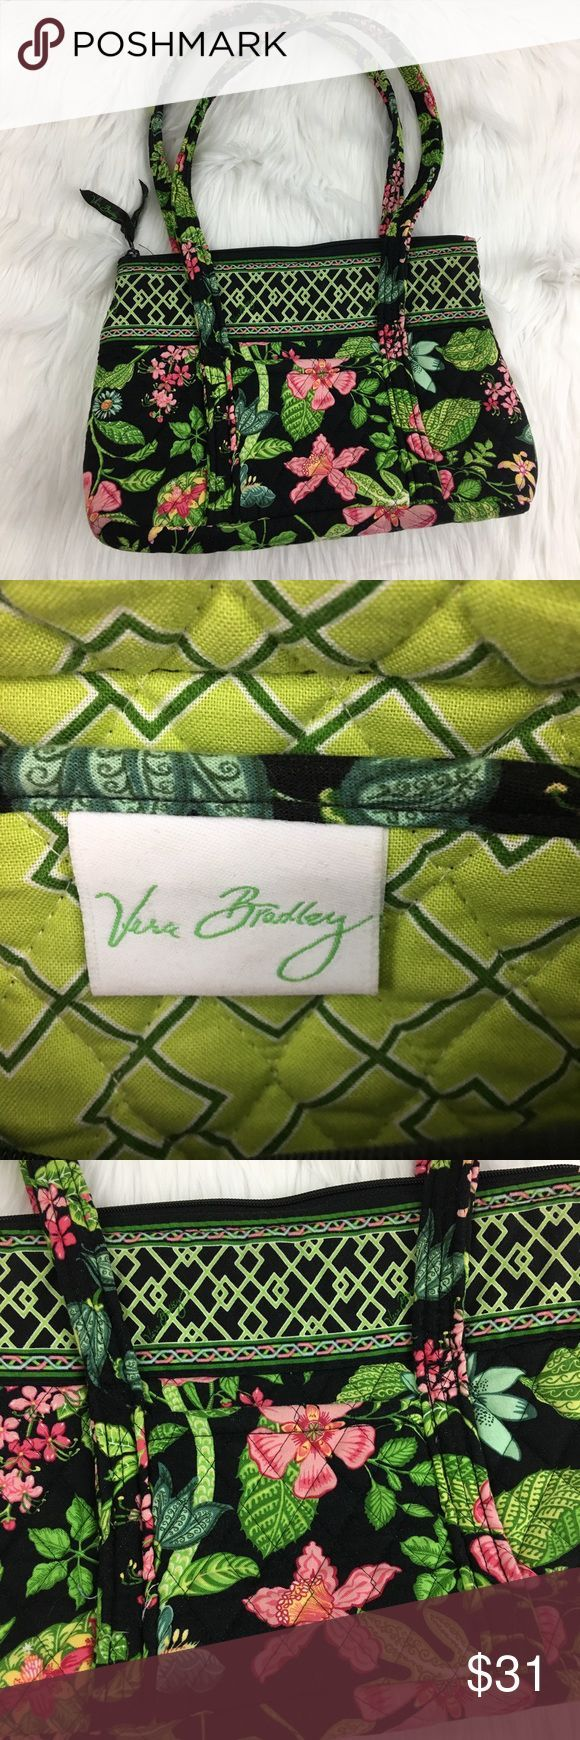 Bags & Handbag Trends : Vera Bradley Handbag Vera Bradley Handbag with floral and lattice design.